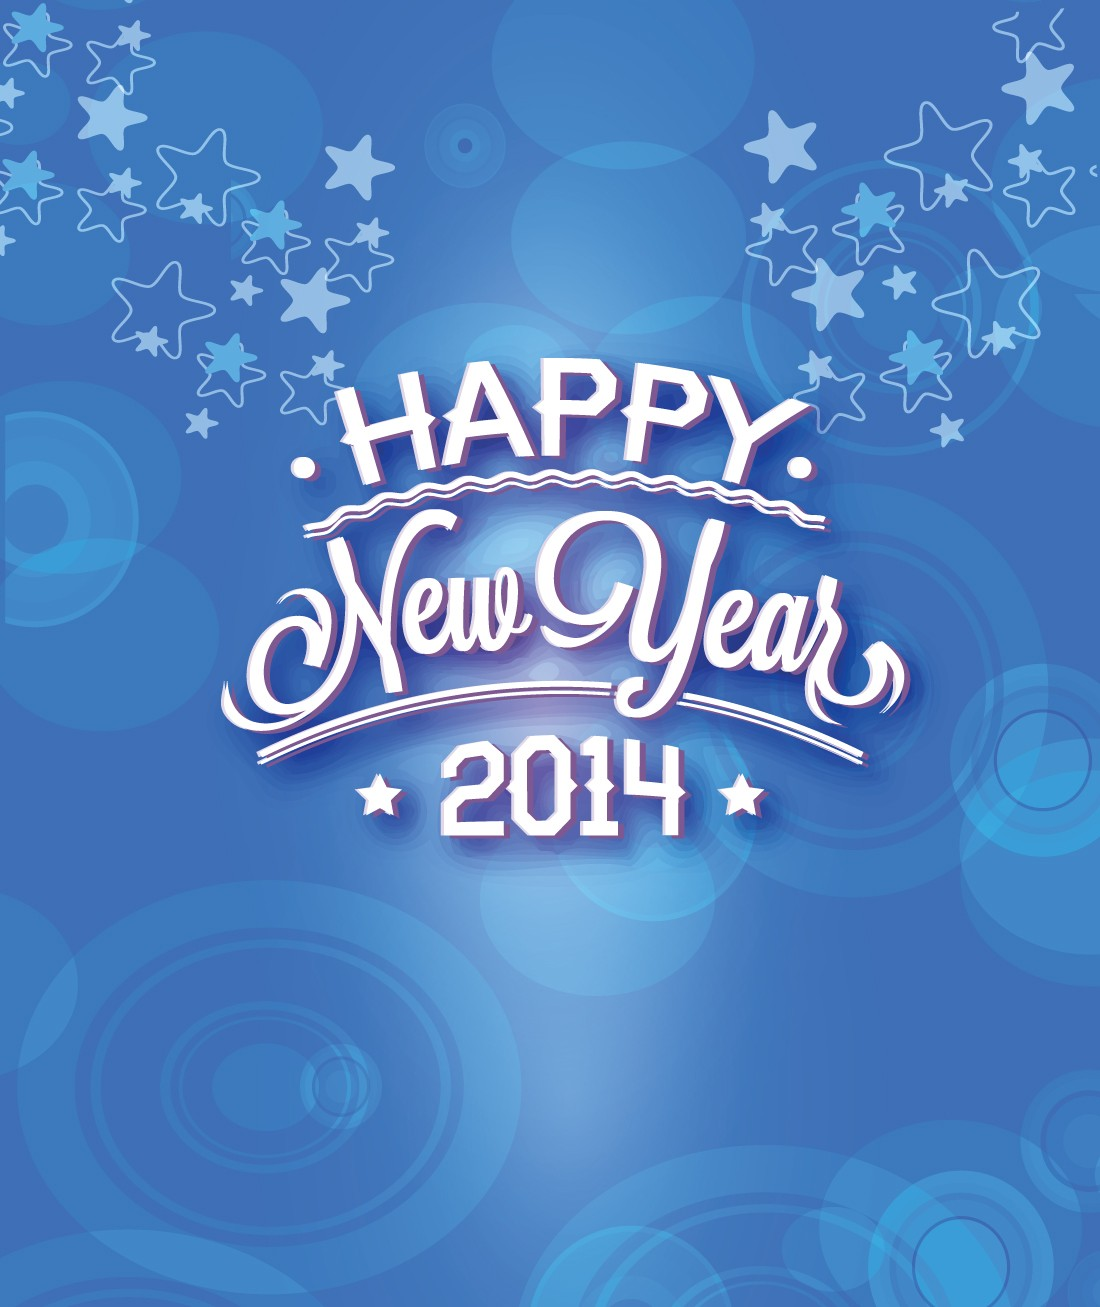 Free download New Year 2014 Wallpapers Backgrounds Elsoar